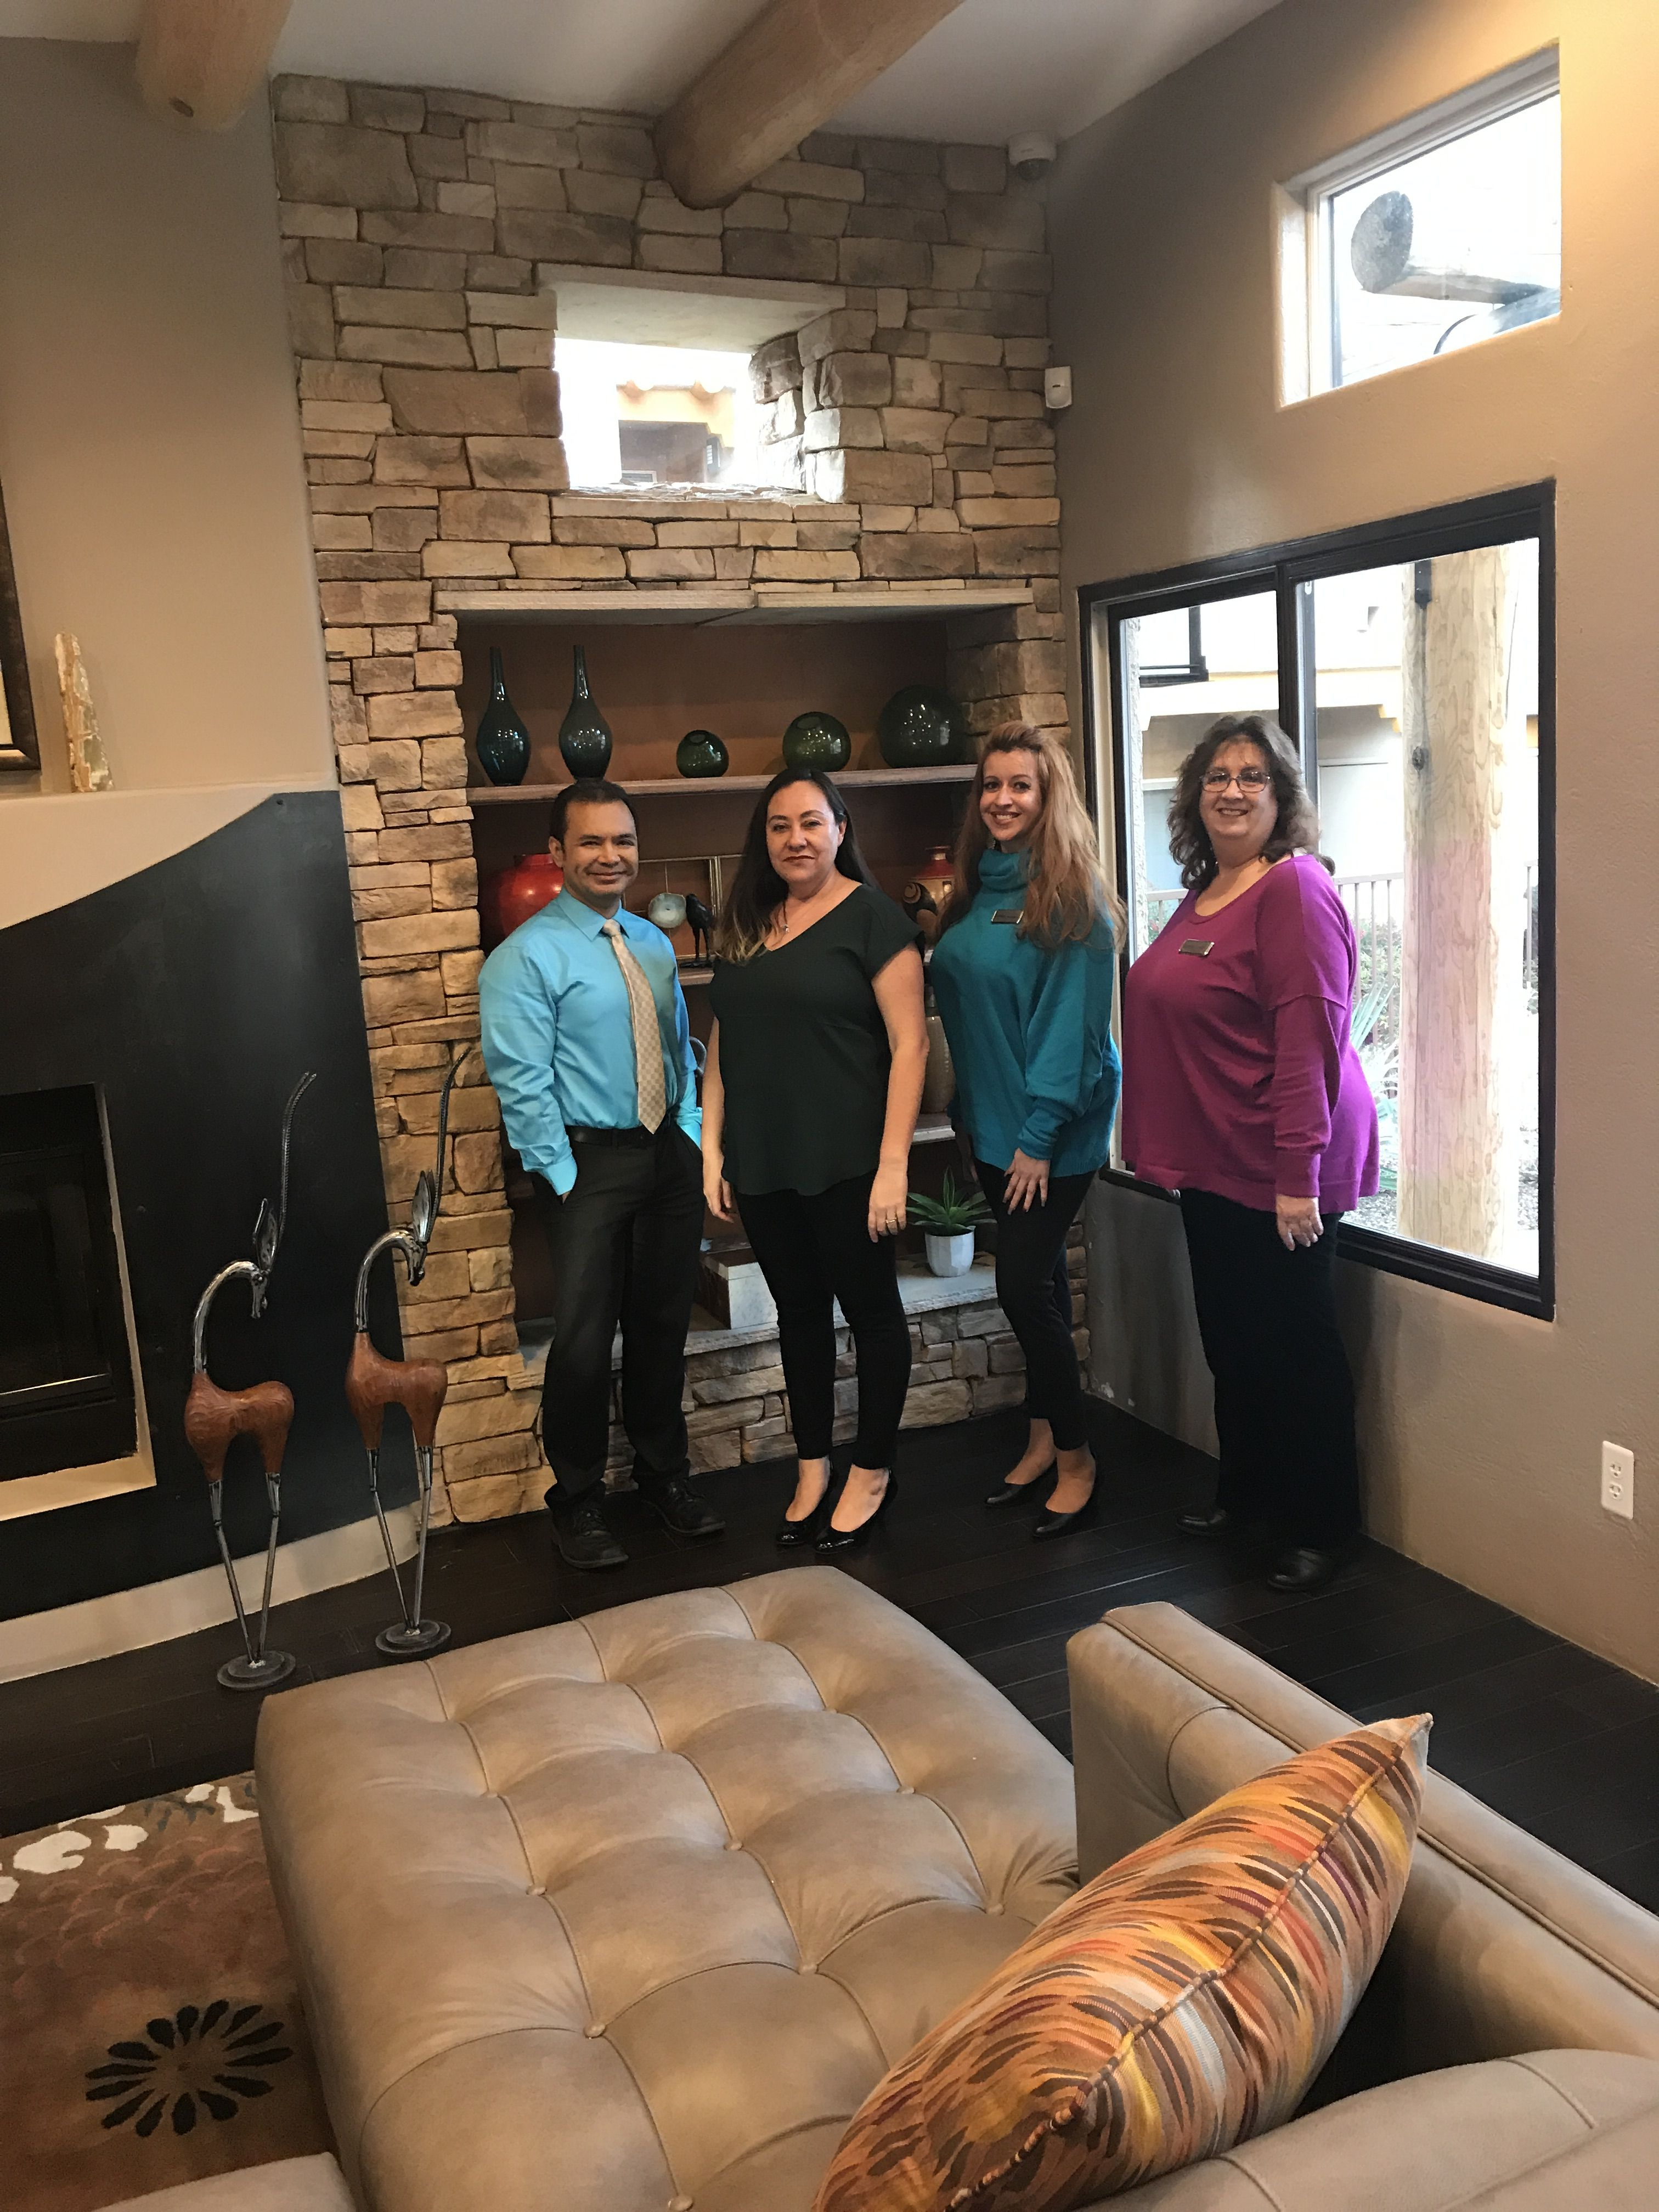 The Vizcaya Team Wants To Wish You And Your Family A Wonderful Thanksgiving And Safe Travels The Vizcaya Apartments In Santa Fe Safe Travel Vizcaya Northland